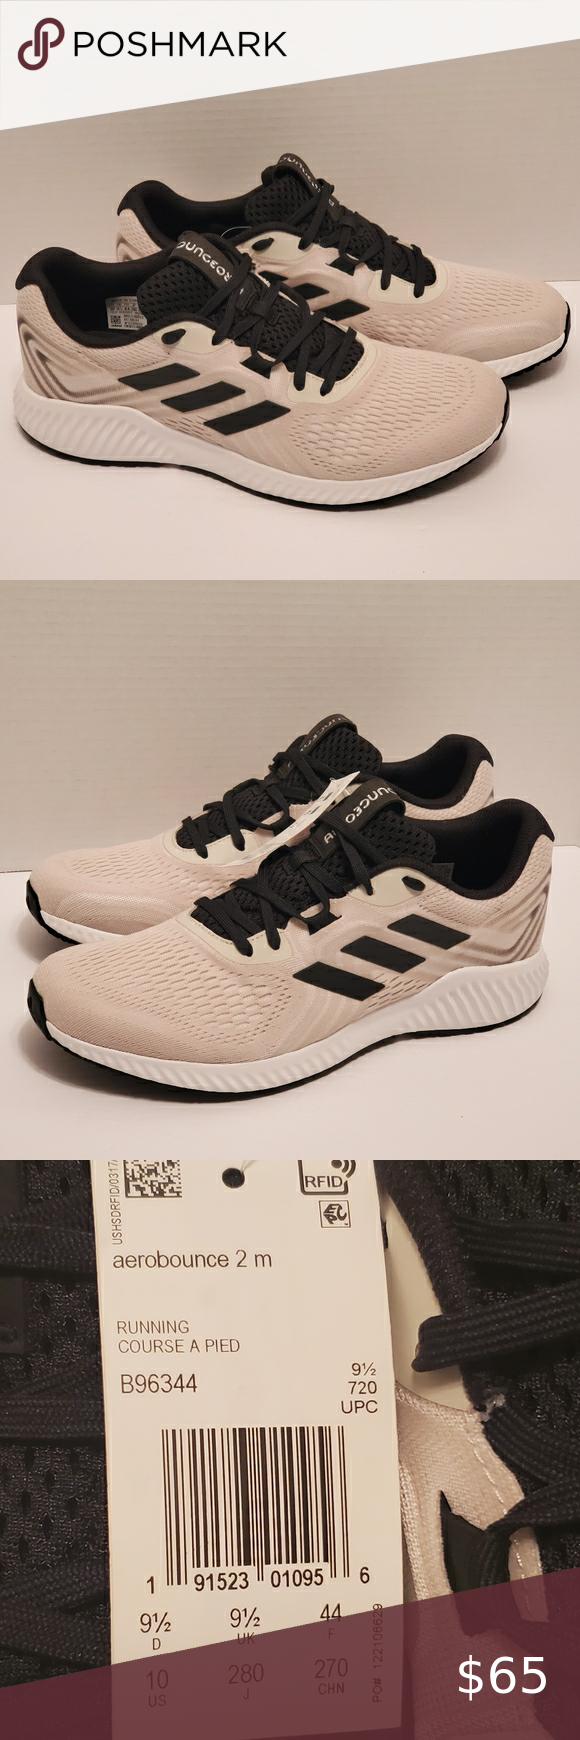 adidas running shoes size 10